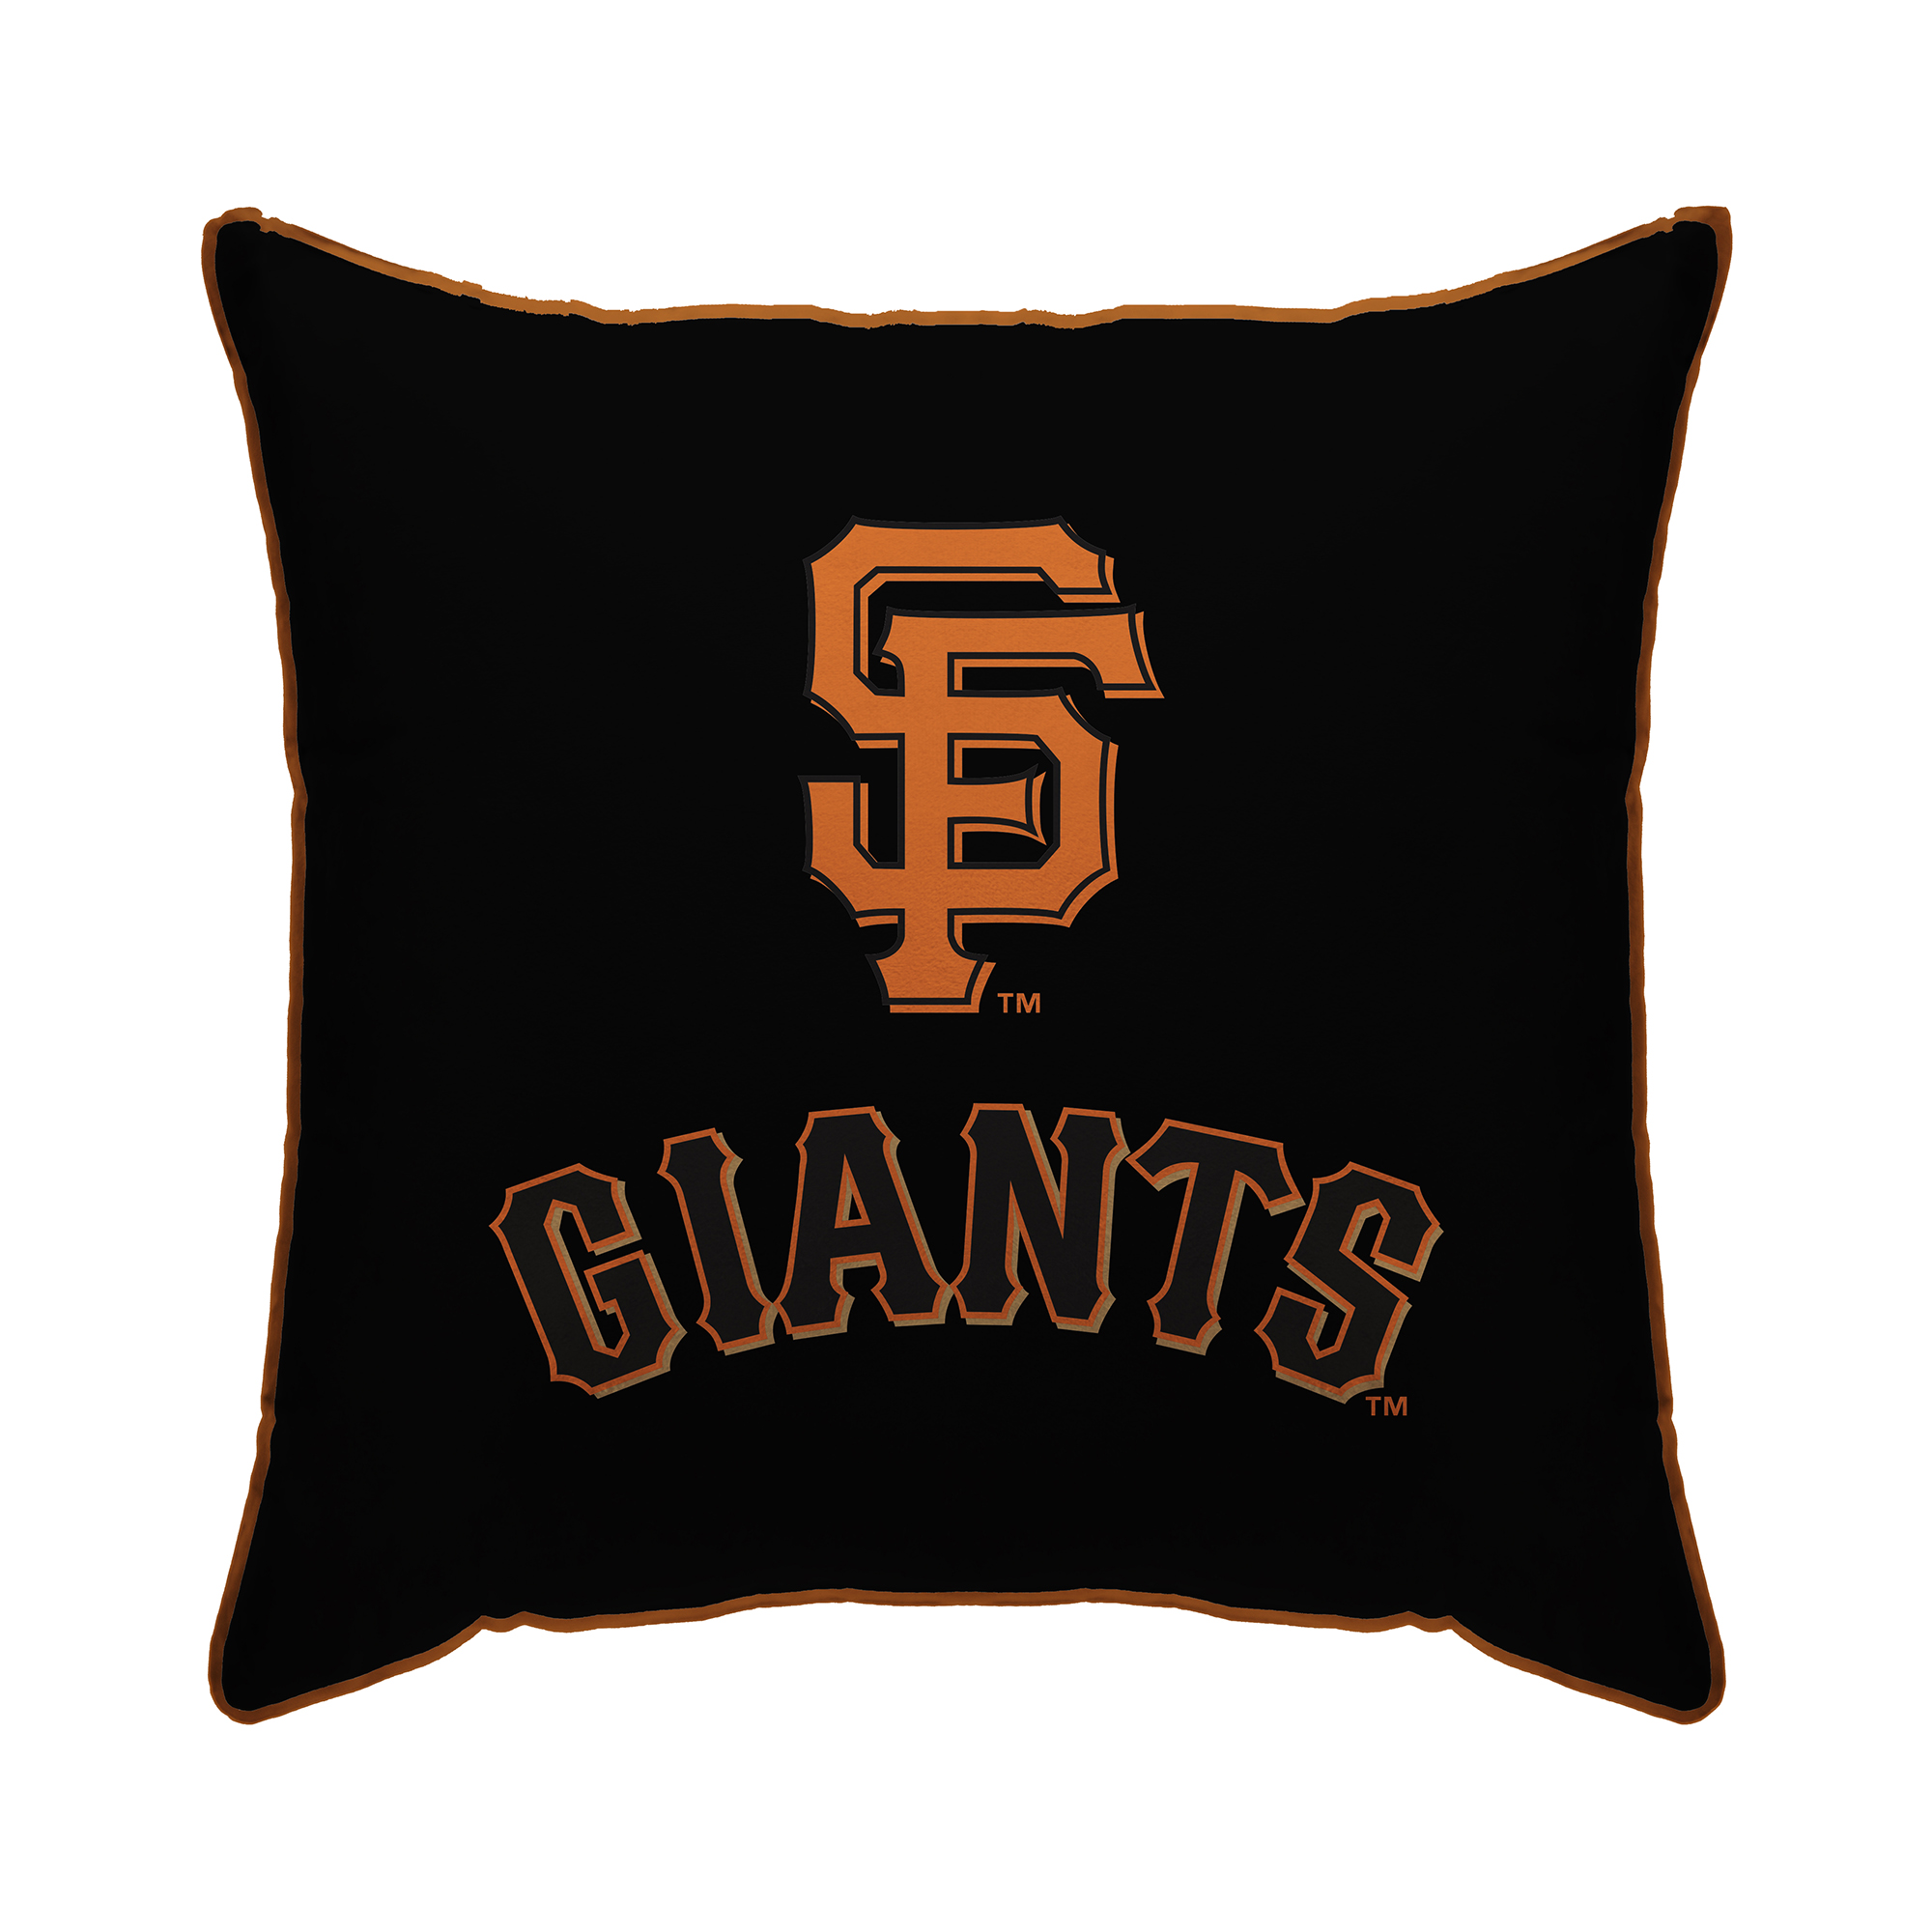 "San Francisco Giants 18"" x 18"" Plush Team Logo Decorative Throw Pillow - Black - No Size"